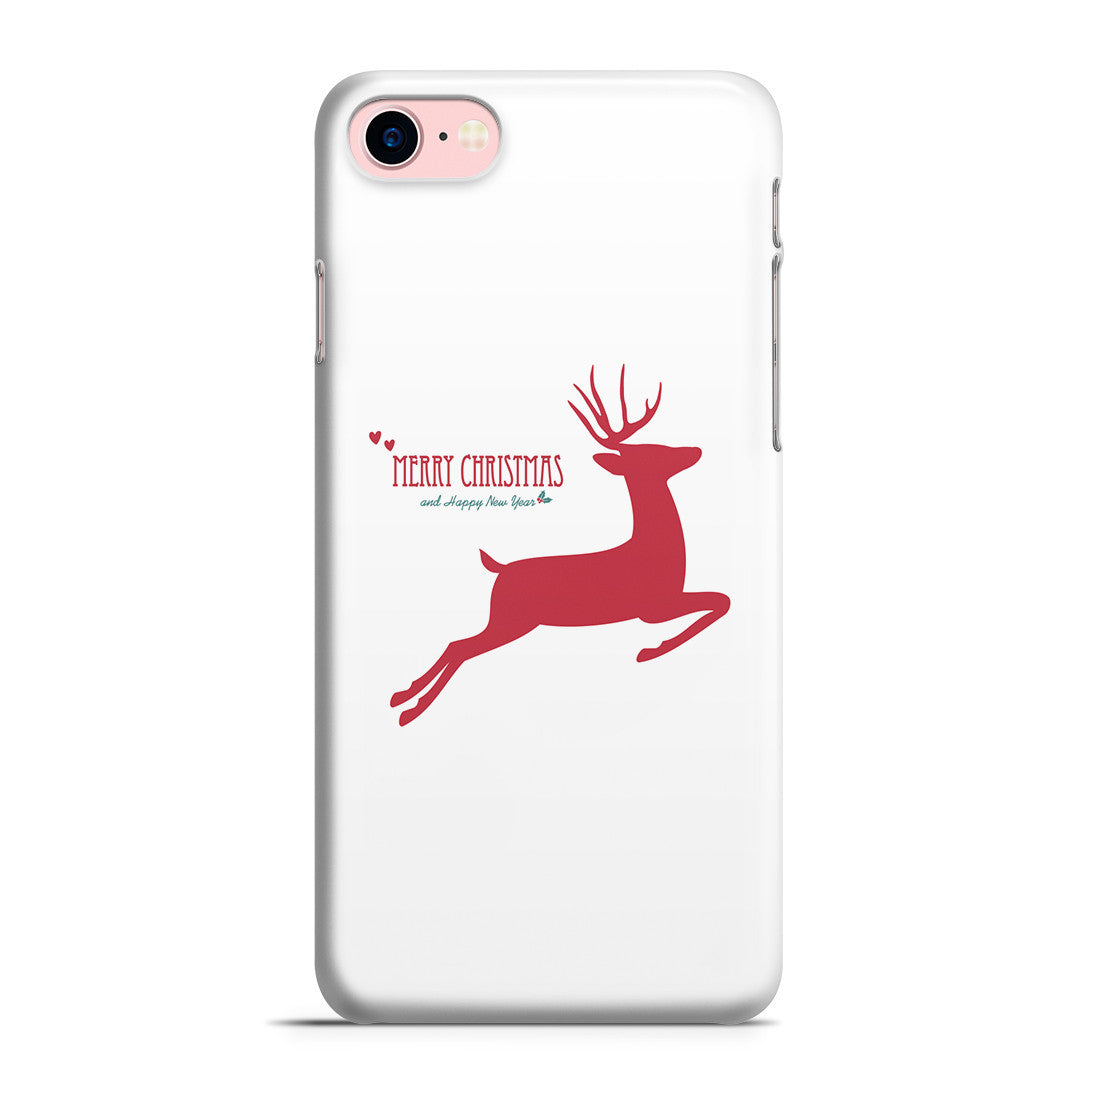 iPhone 6   6s Plus Case - Yuletide   Premium Collection of Cases and ...